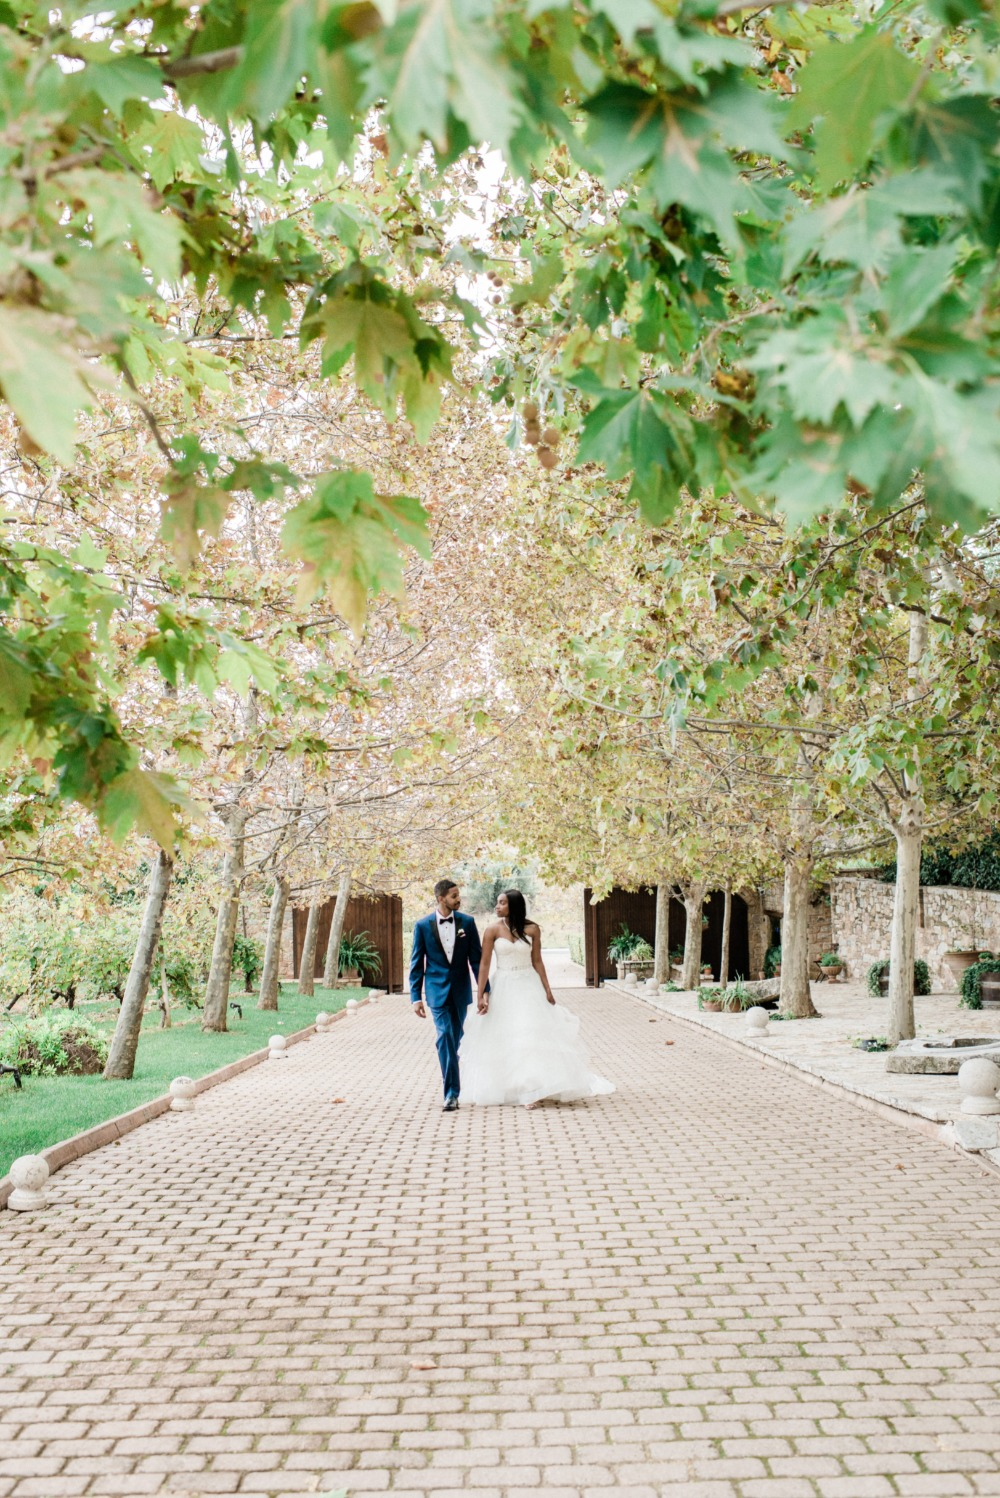 Brenae and Ryan's Romantic Destination Wedding in Greece gallery image 19